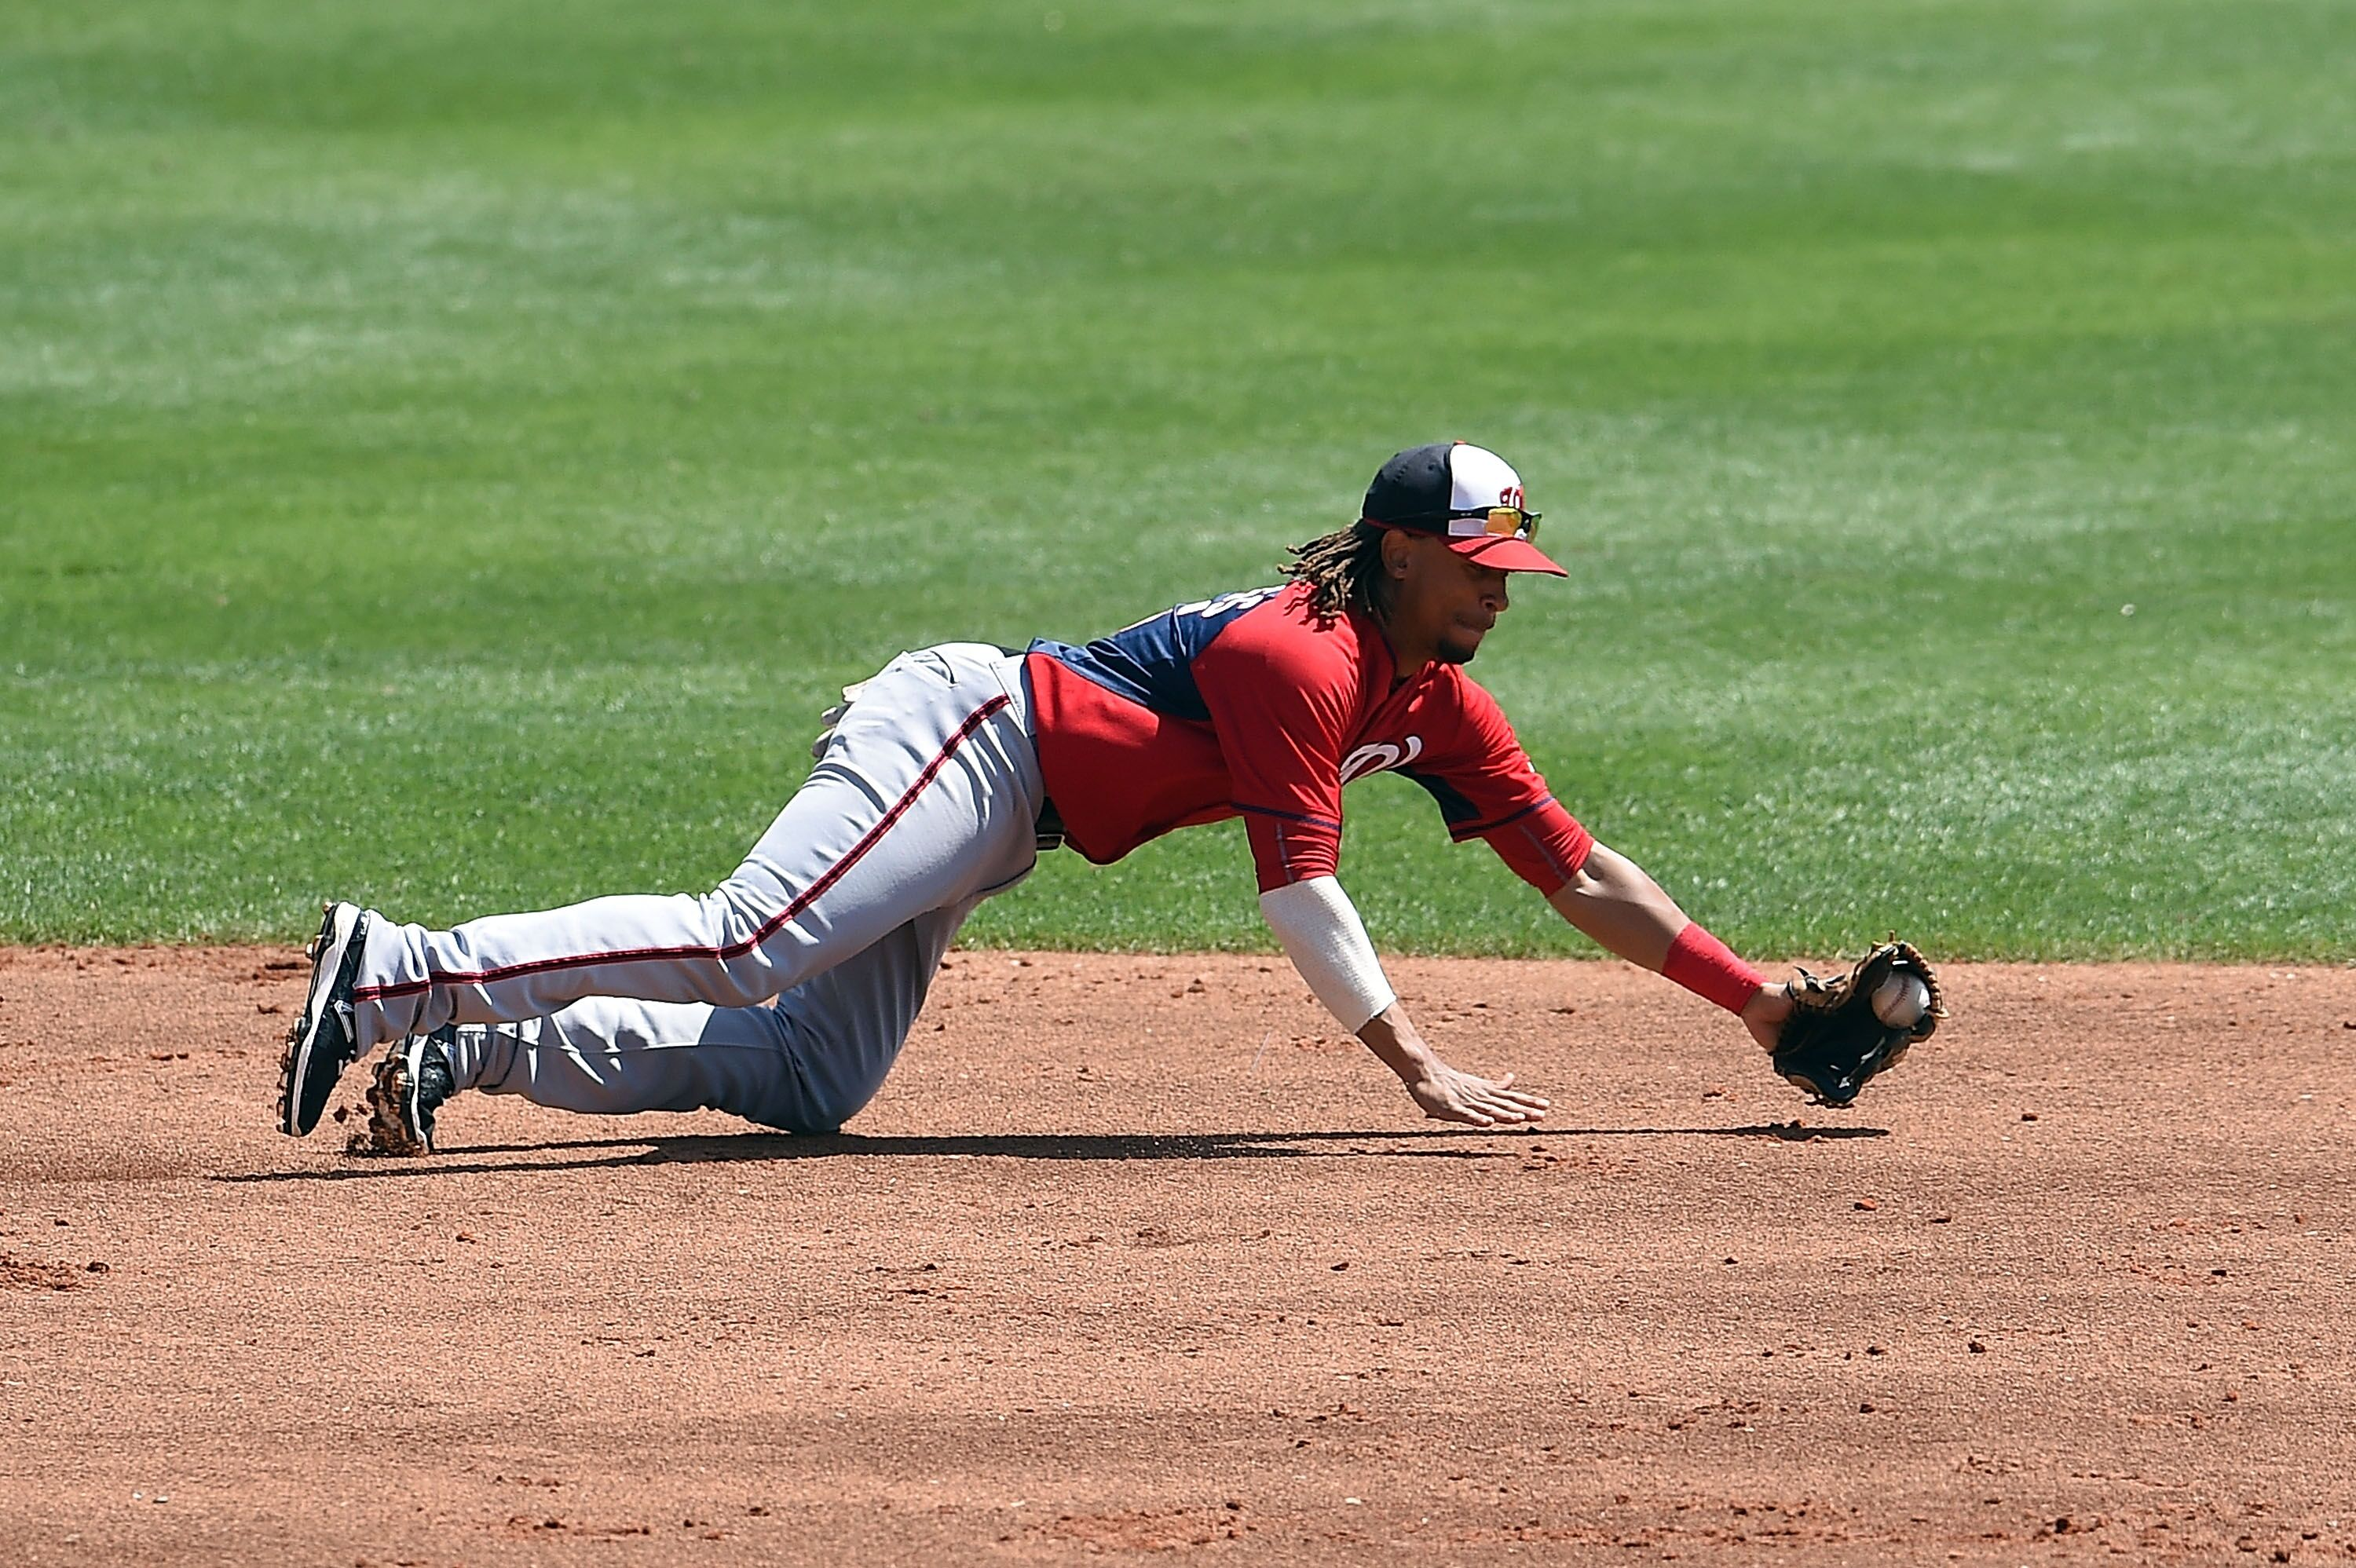 467161680-washington-nationals-v-atlanta-braves.jpg